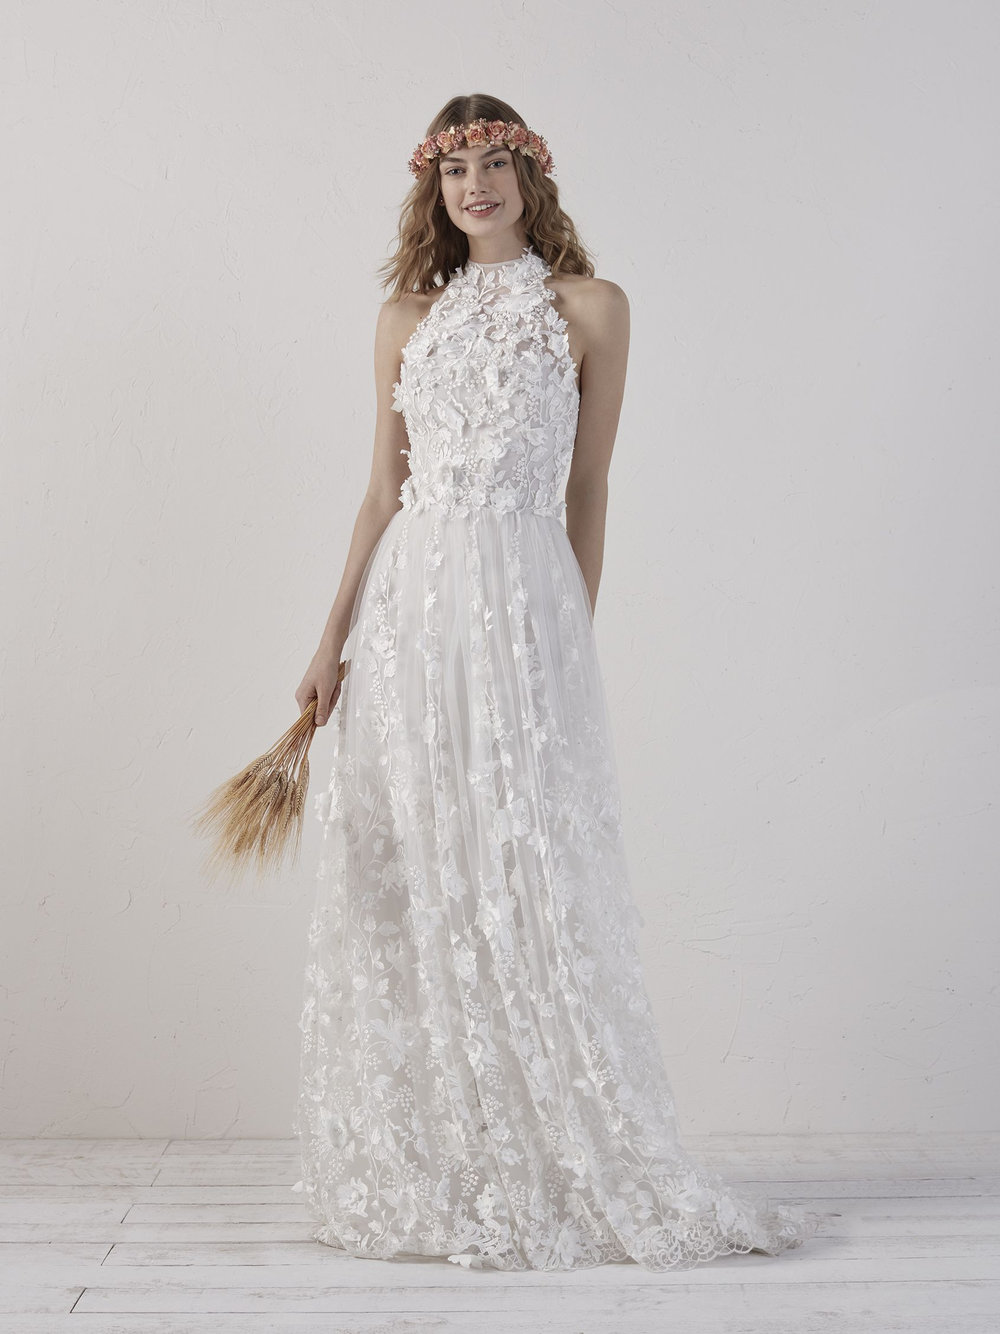 / 13 - PRONOVIAS | EDENA Design crafted in thread-embroidered tulle with speckled pearl appliqués, creating a raised pattern with 3D floral accents that cover the bride's body to give her that bohemian look.